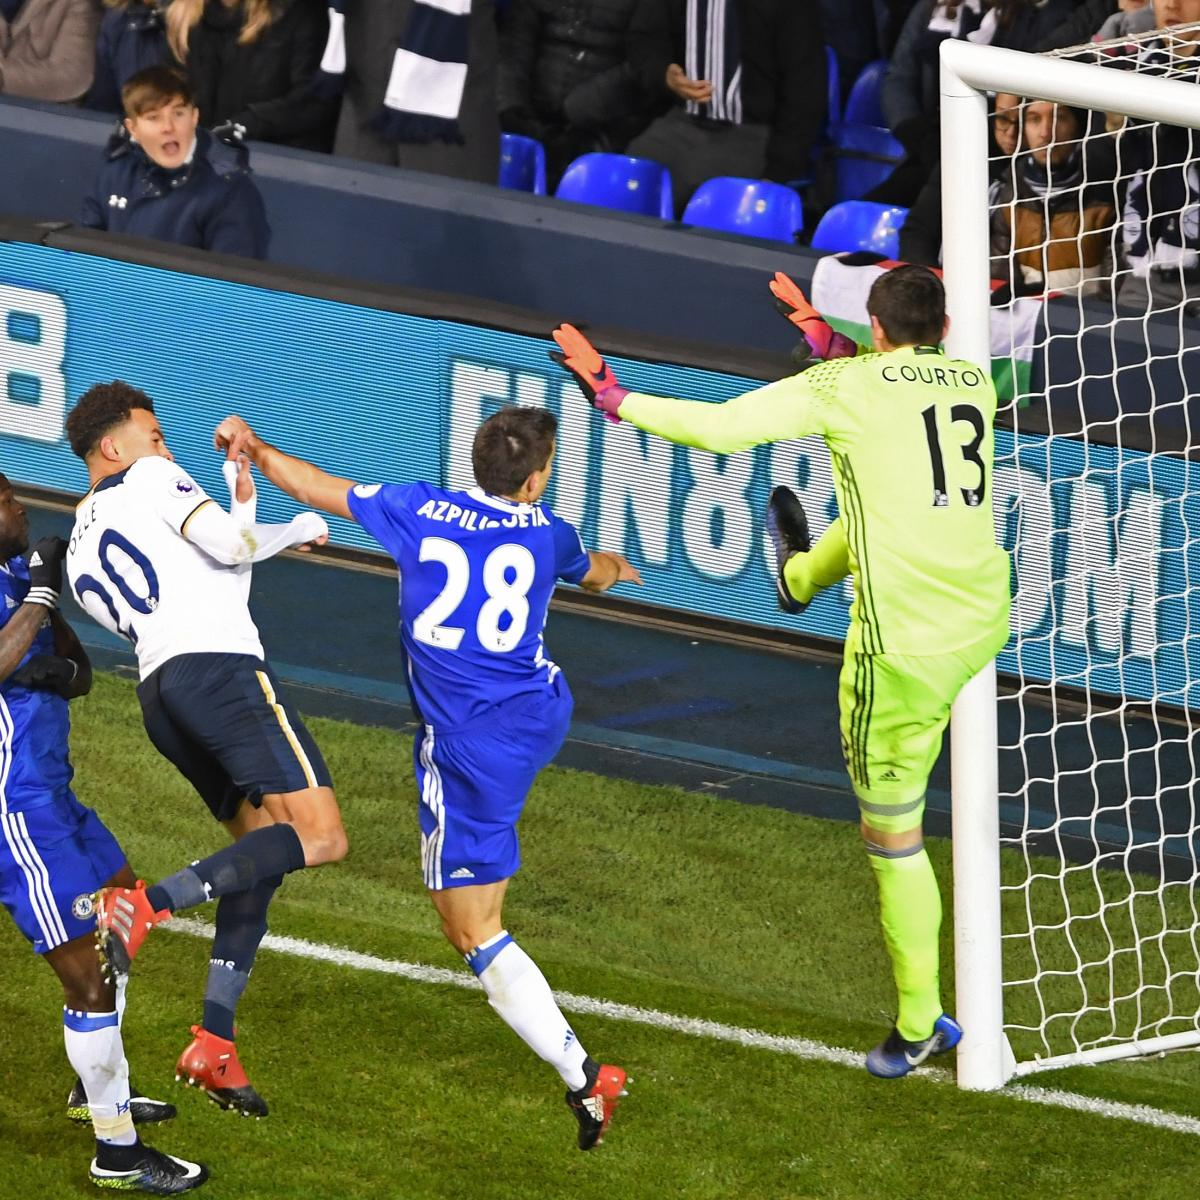 Chelsea Vs Tottenham Score Reaction From 2016 Premier: Tottenham Vs. Chelsea: Score And Reaction From 2017